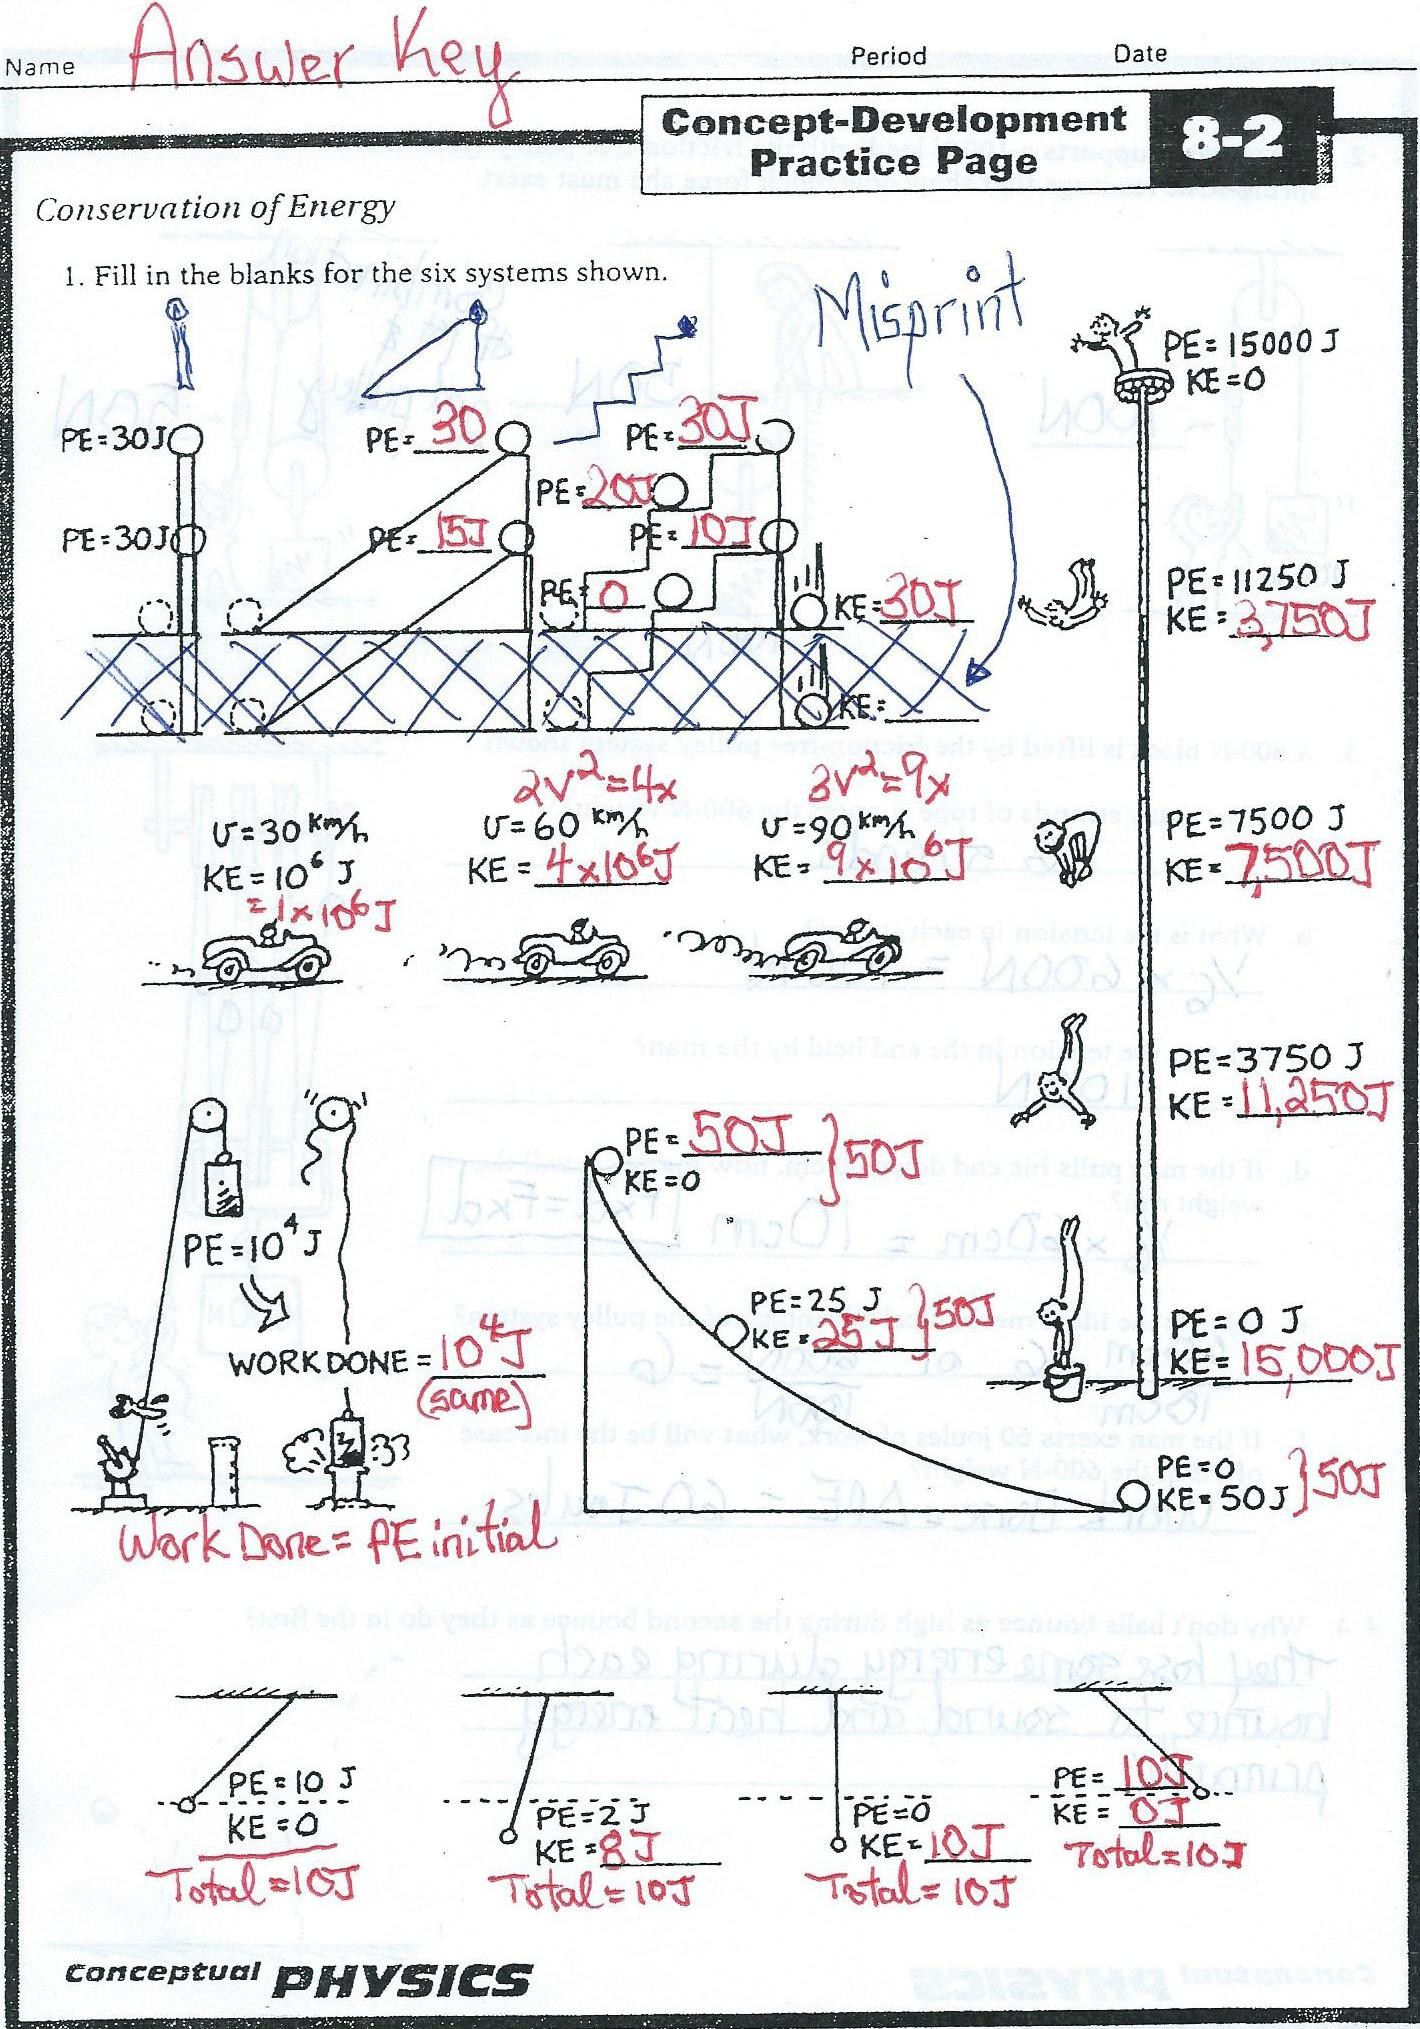 worksheet Conceptual Physics Worksheets south pasadena high school chp 8 cde 2 front answers jpg